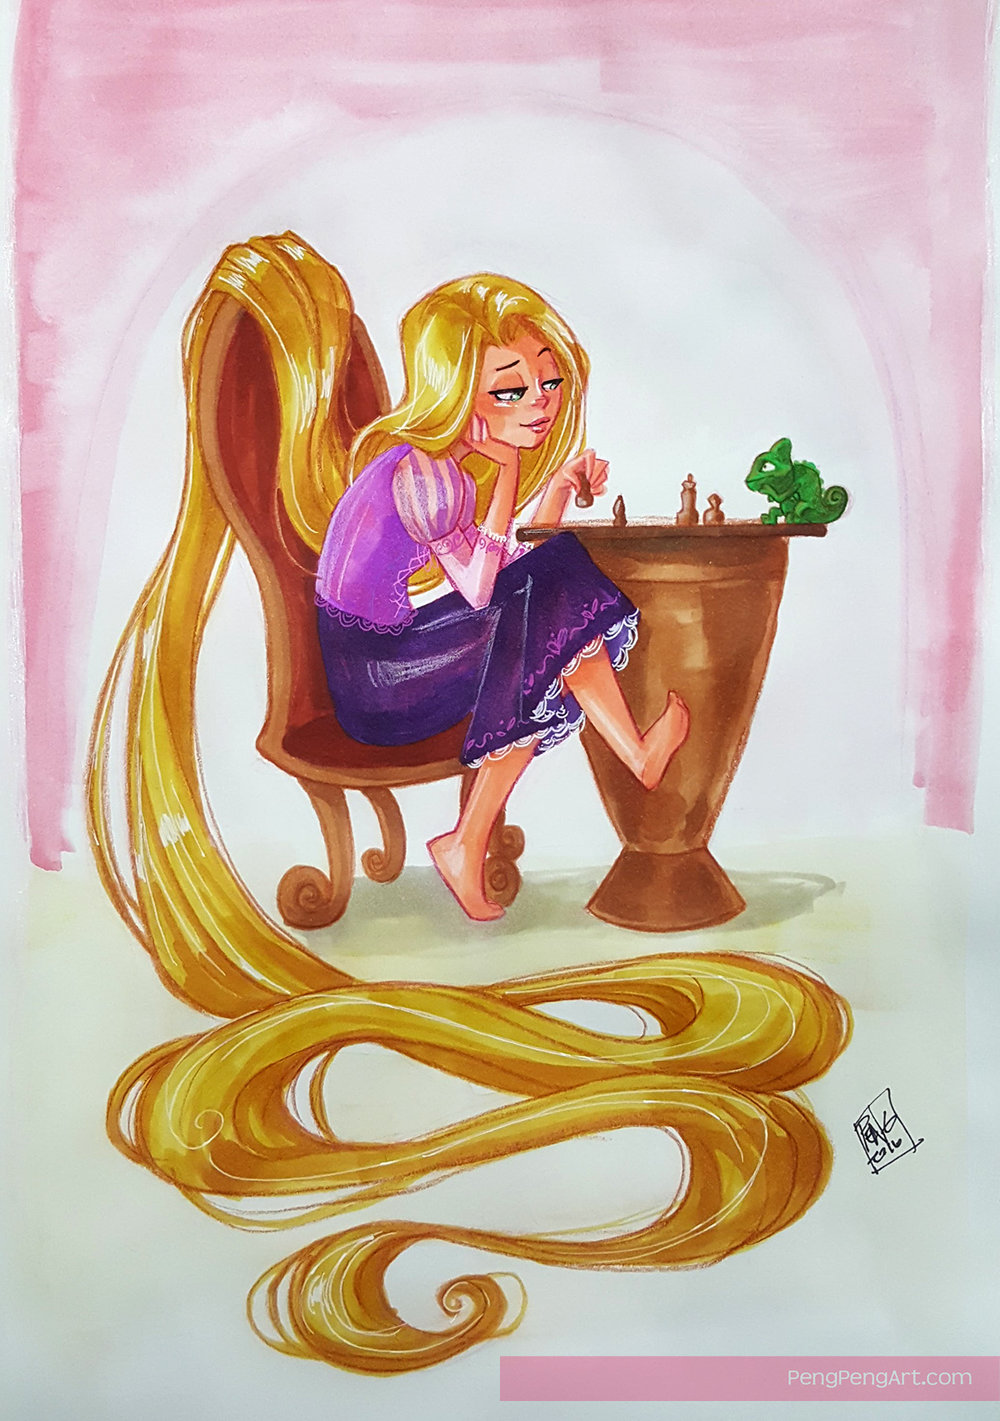 tangled commission.jpg